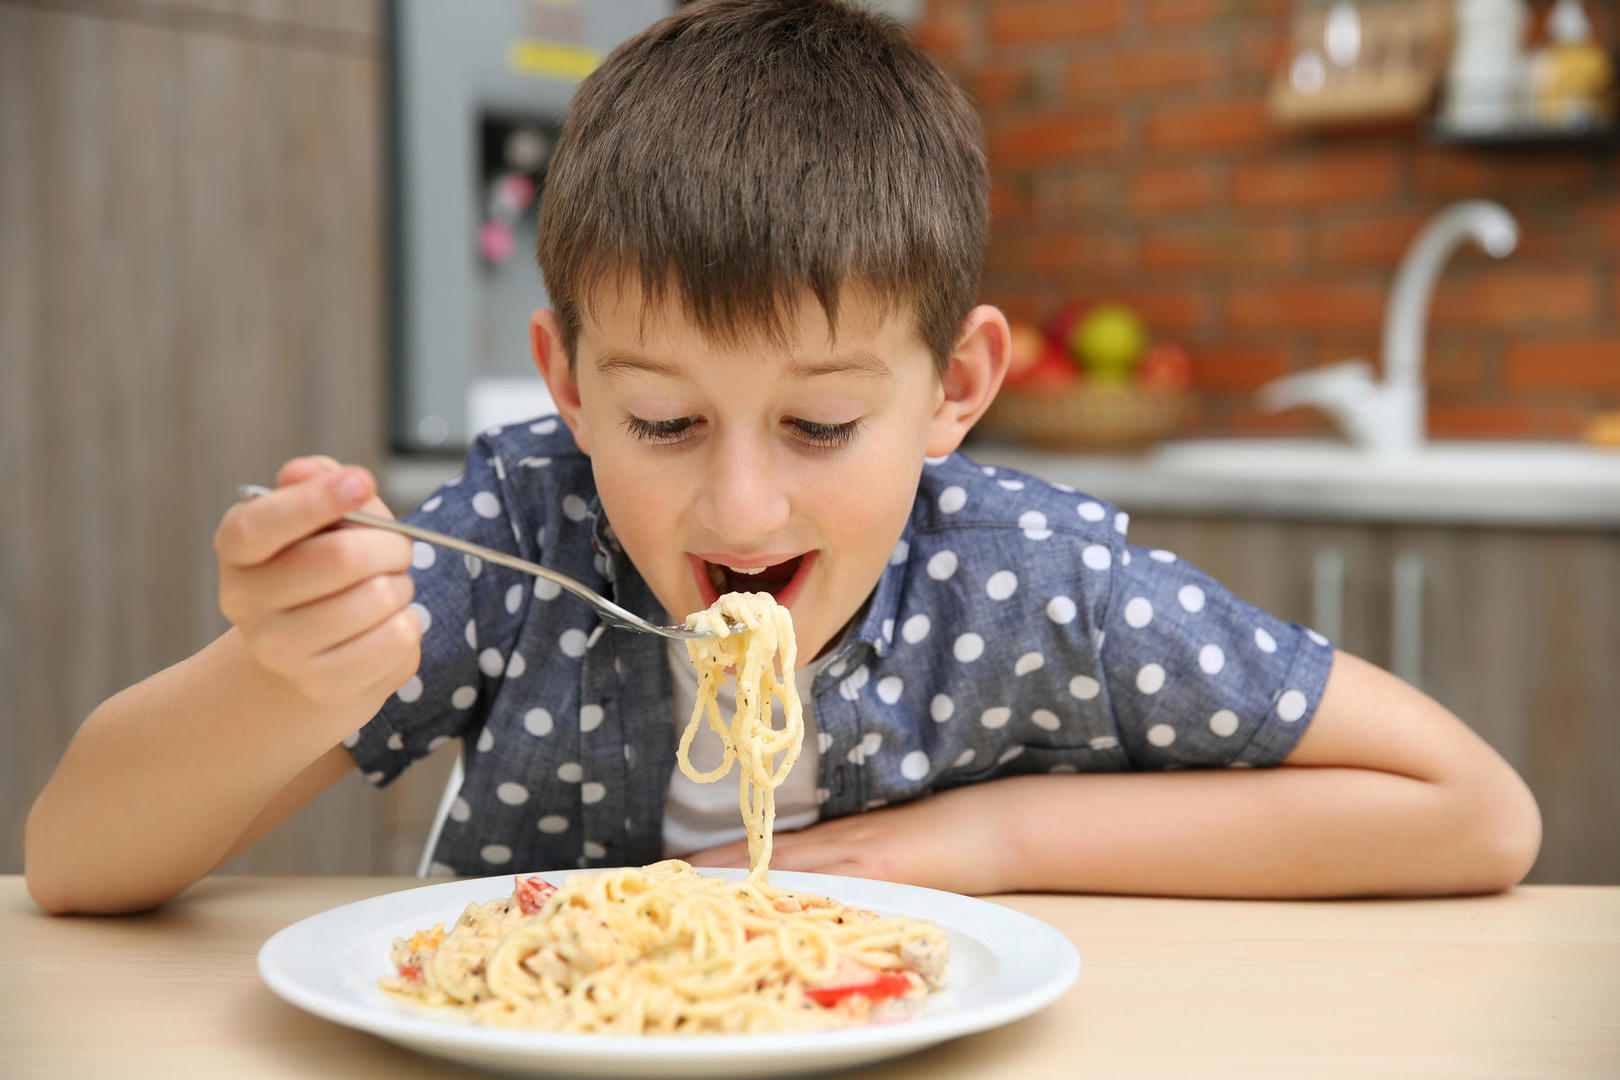 Endorsements by vloggers increase kids unhealthy food intake